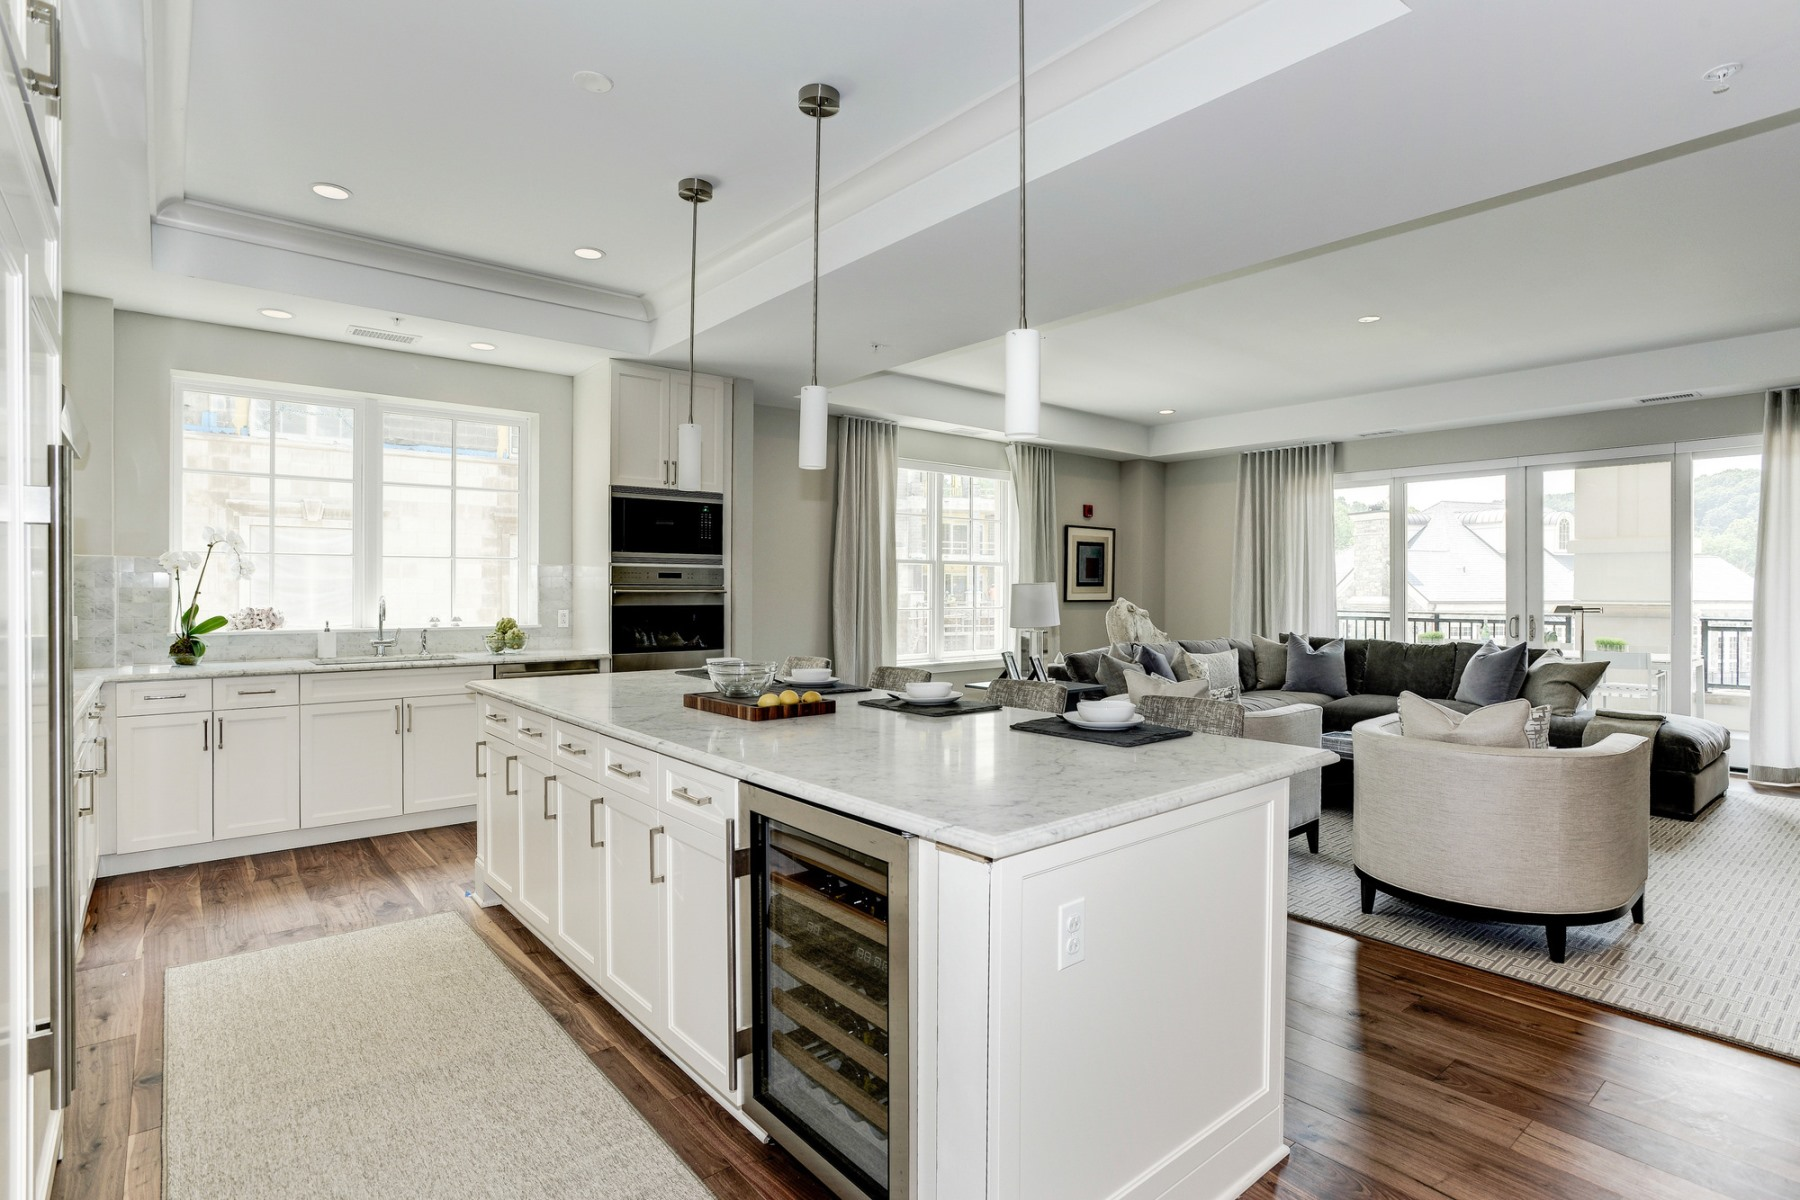 Condominium for Sale at 8101 River Road 454, Bethesda 8101 River Rd 454 Bethesda, Maryland 20817 United States